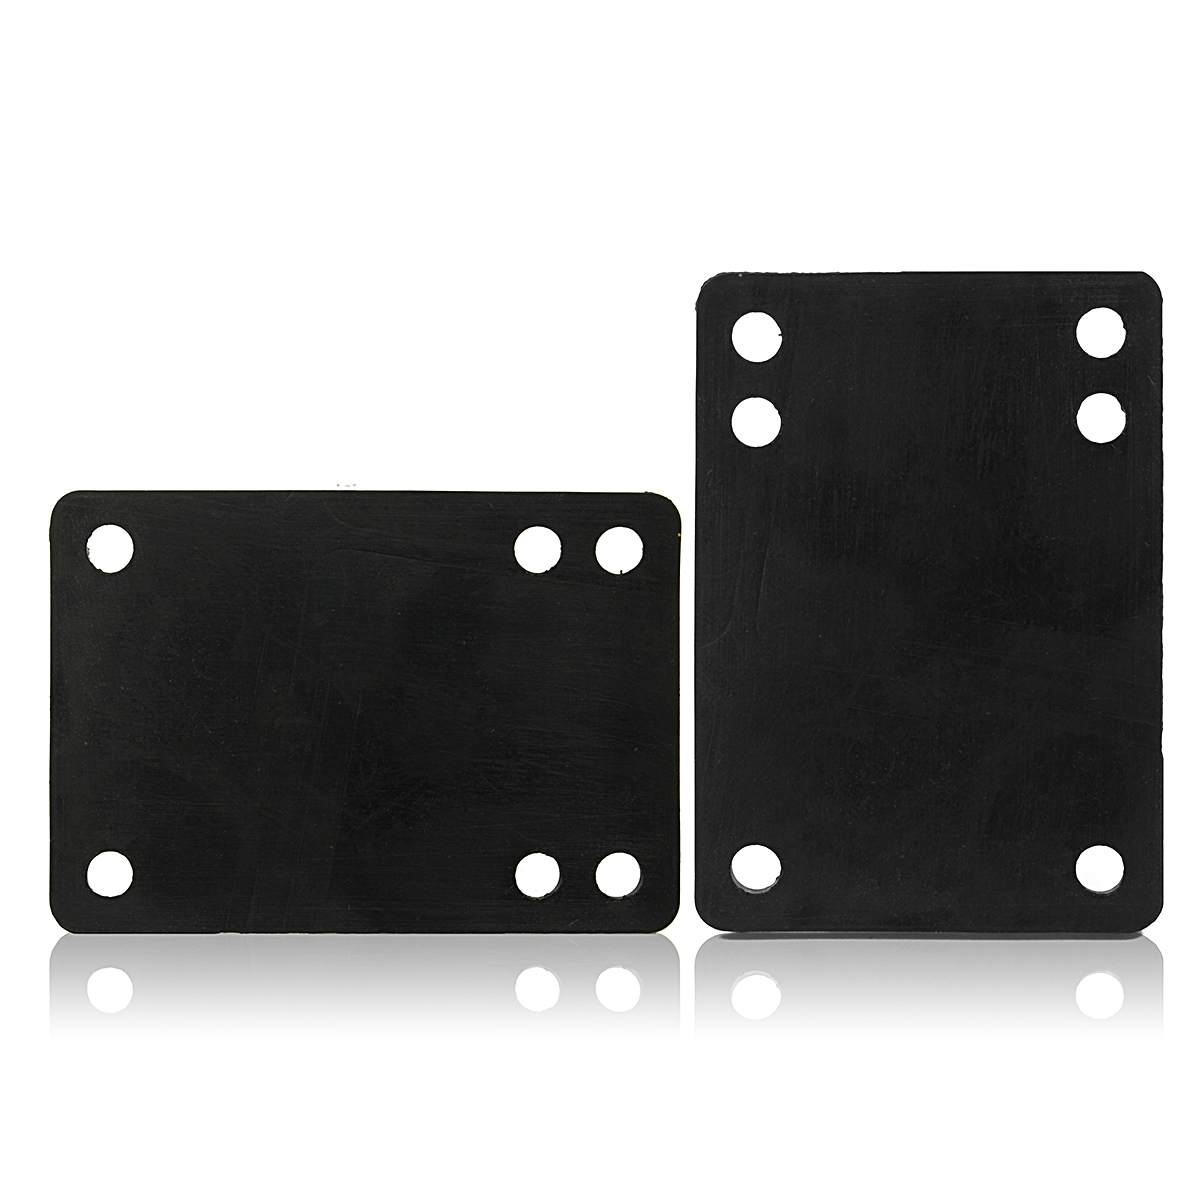 2PCS Soft Skateboard PU Riser Pads Longboard Cruiser Scooter Shock Proof Hardware Tools Set Skate Board Accessories Black